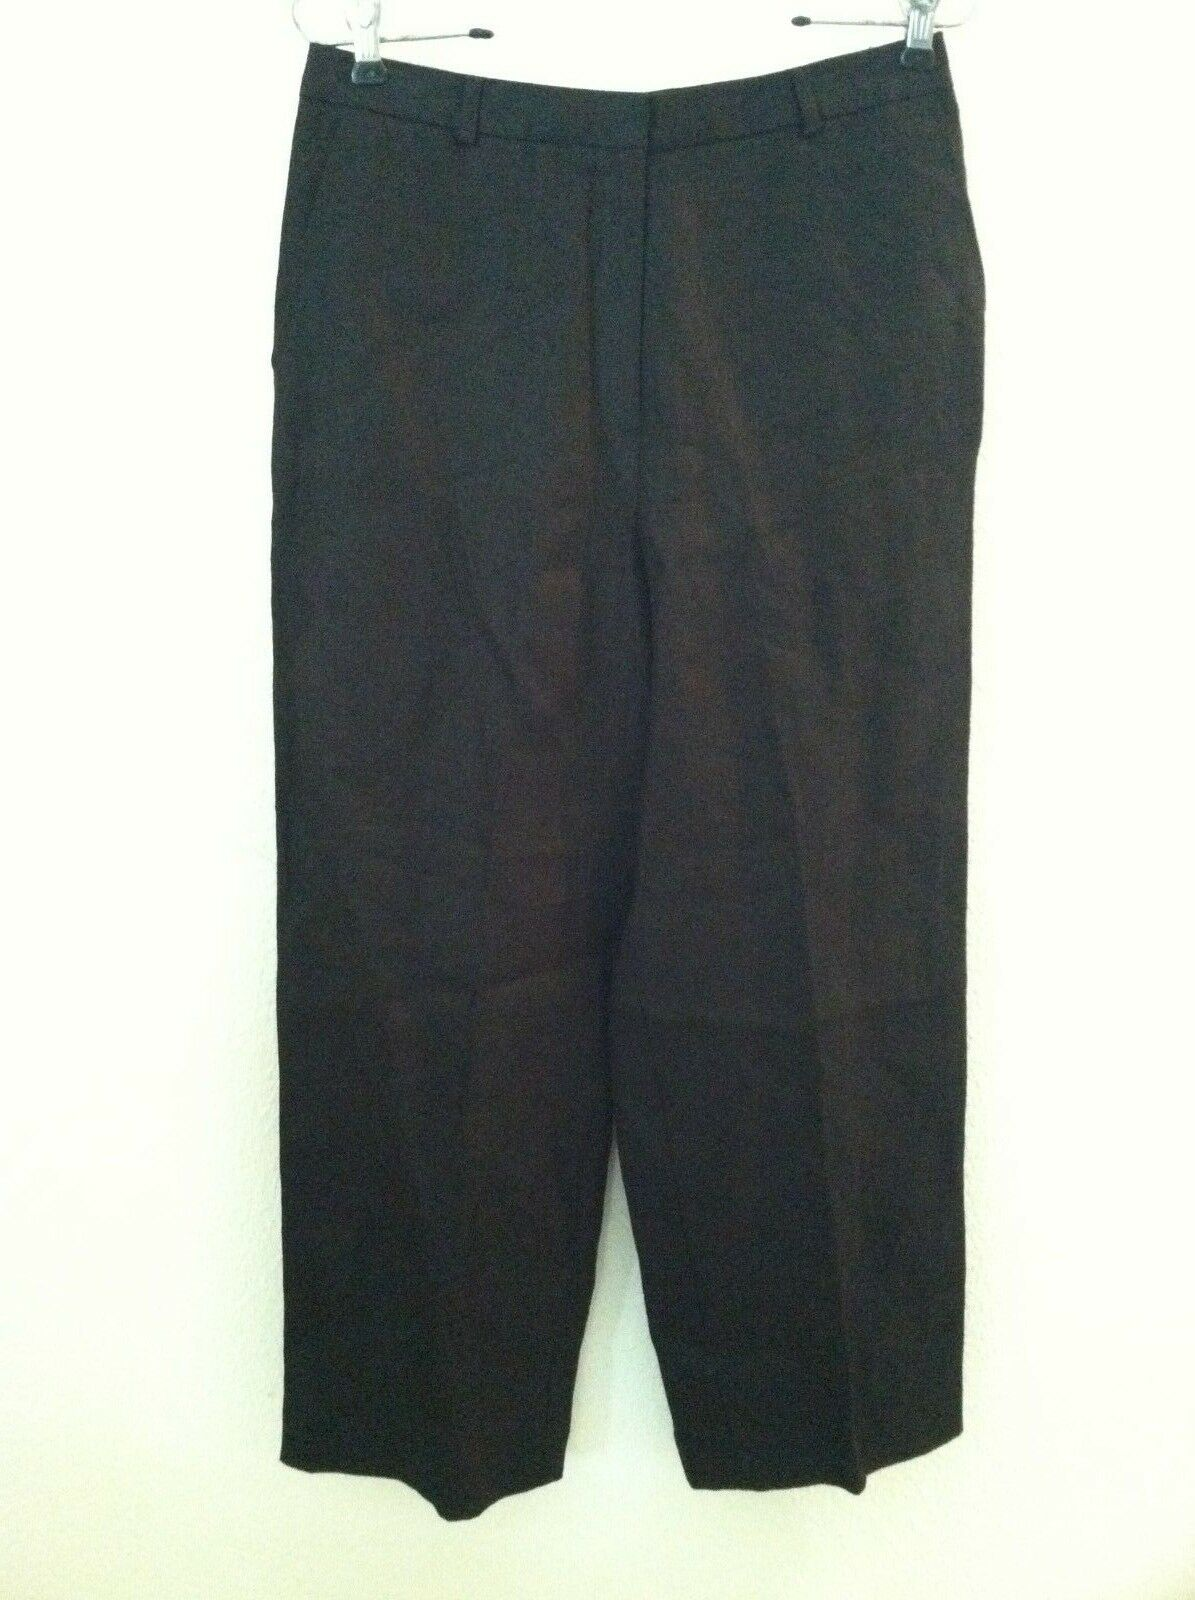 New Talbots damen pant schwarz 100 linen slack baggie Größe 8 unlined flat no pleat